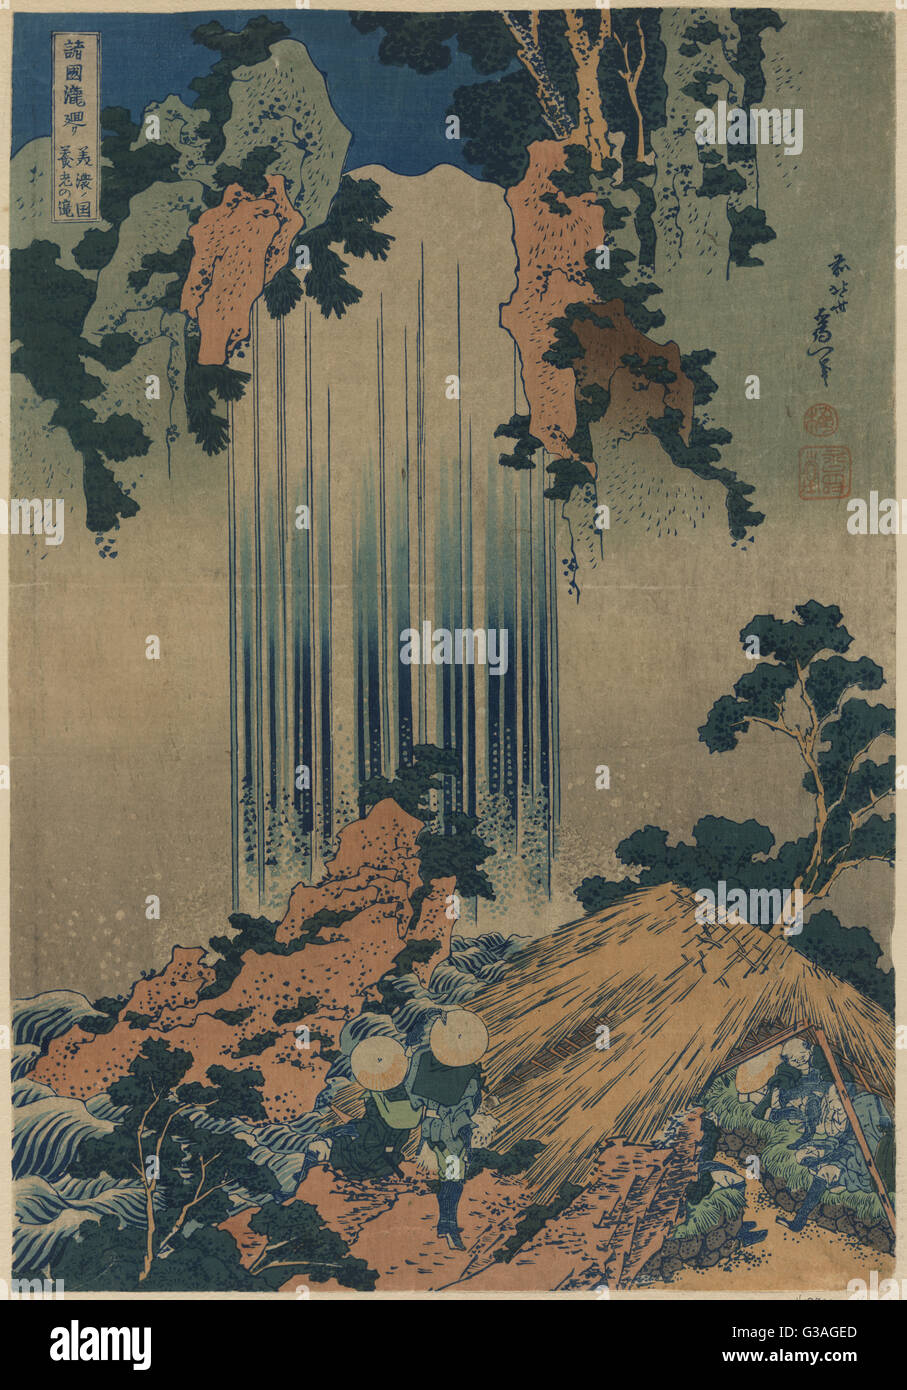 yoro waterfall in mino print shows two pilgrims looking at